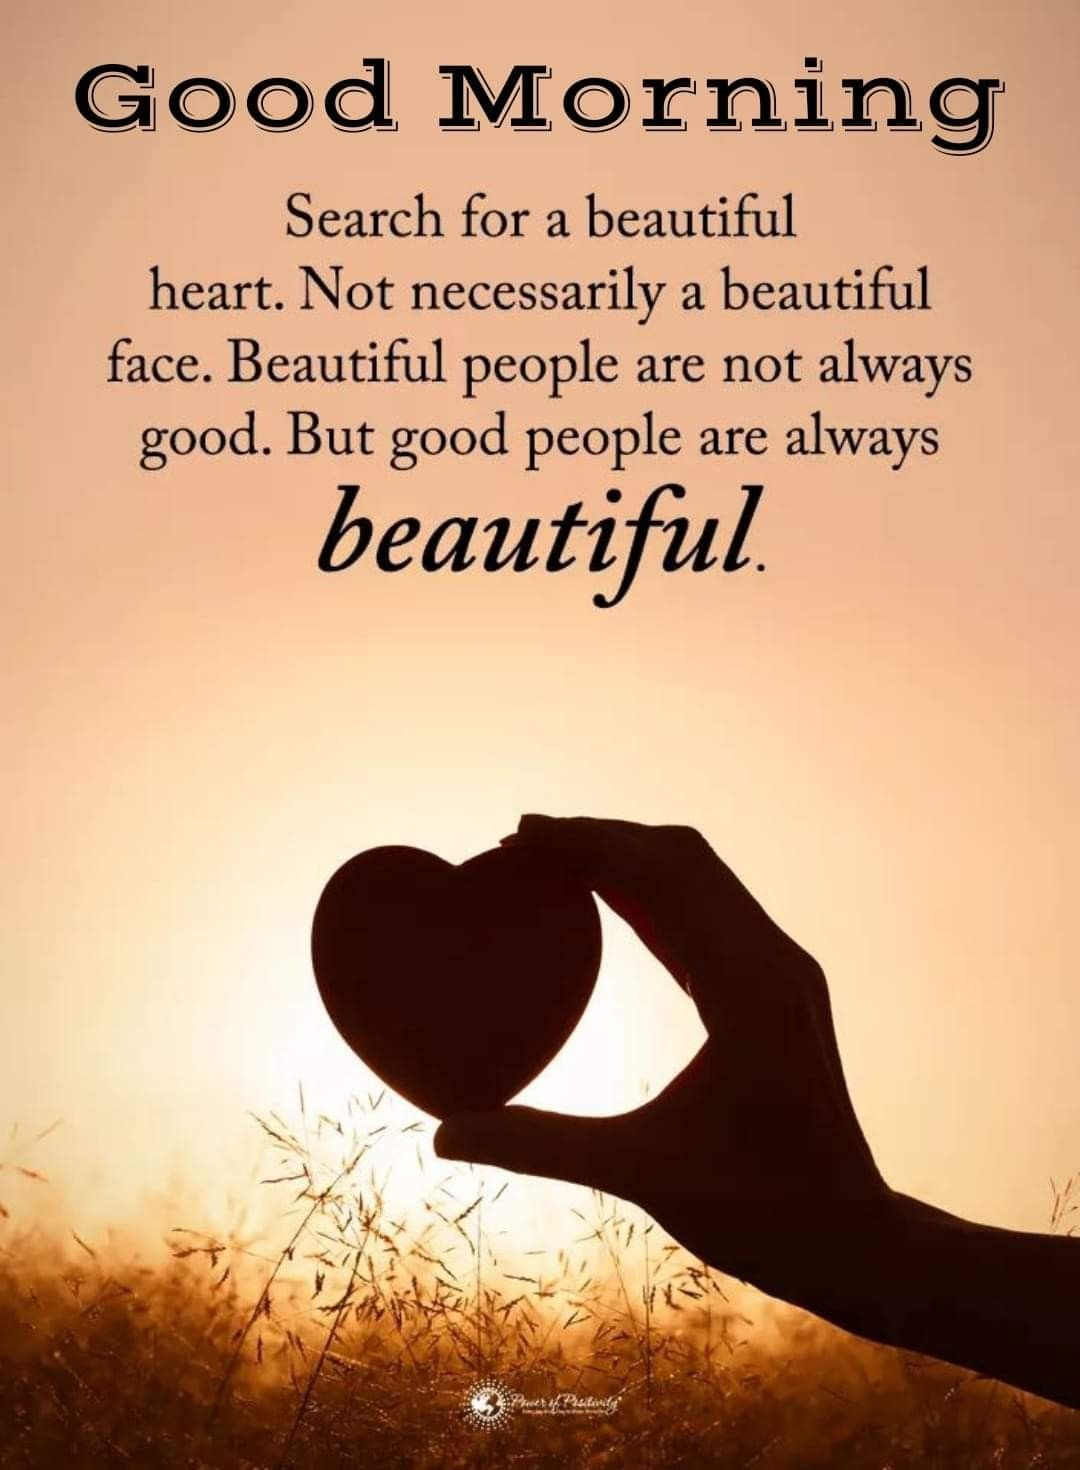 Good Morning Family Quotes : morning, family, quotes, Vishwanath, Morning, Happy, Quotes,, Sweetheart, Quotes